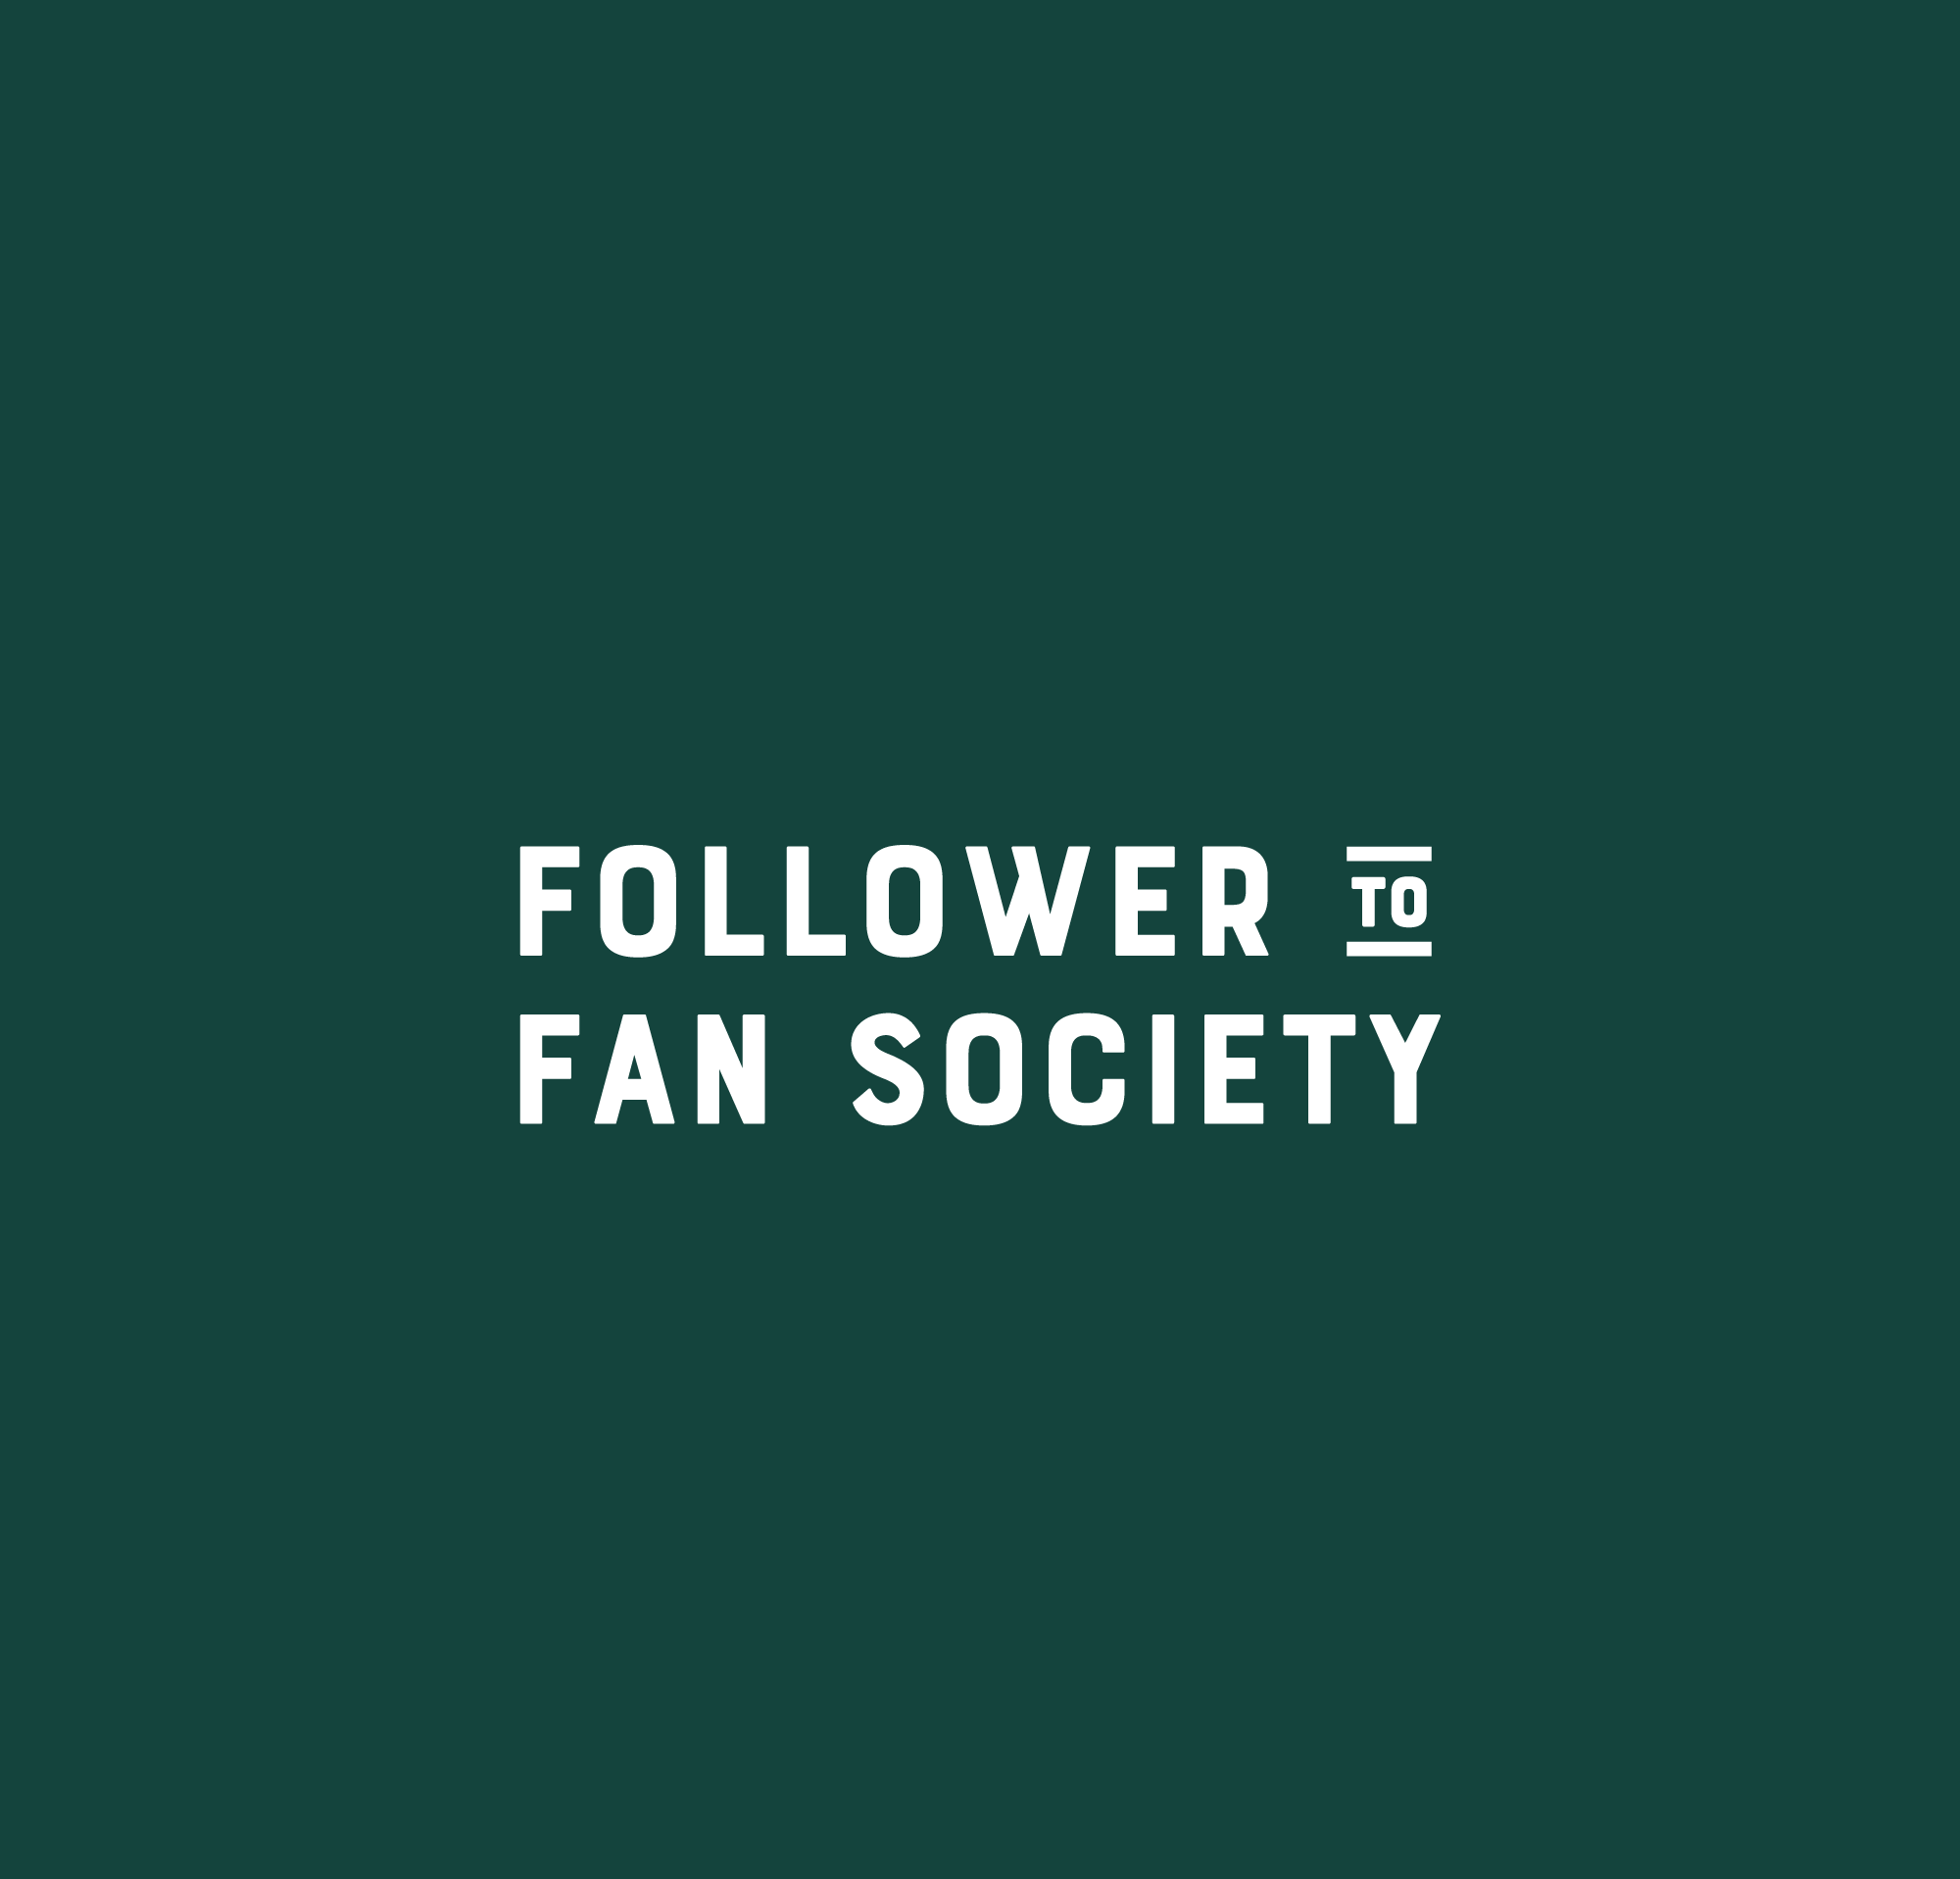 FOLLOWER TO FAN SOCIETY